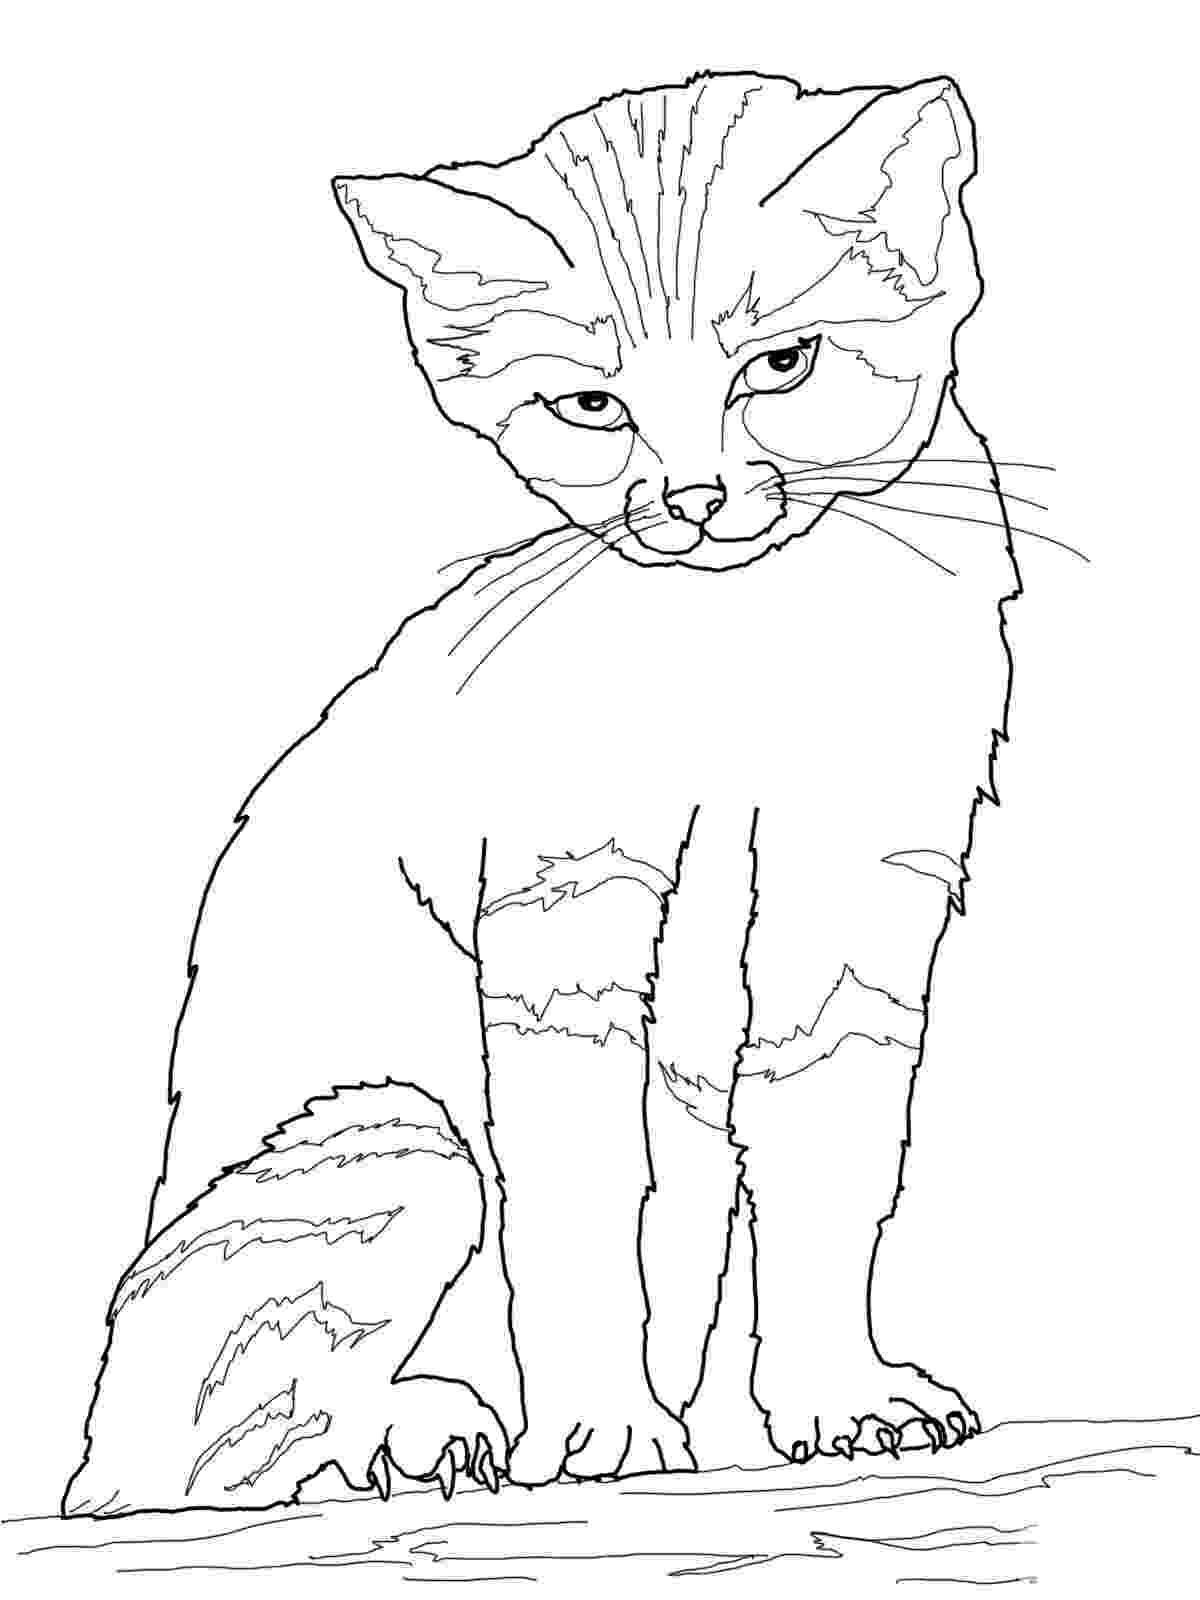 coloring pages of kittens to print free printable cat coloring pages for kids coloring pages of to print kittens